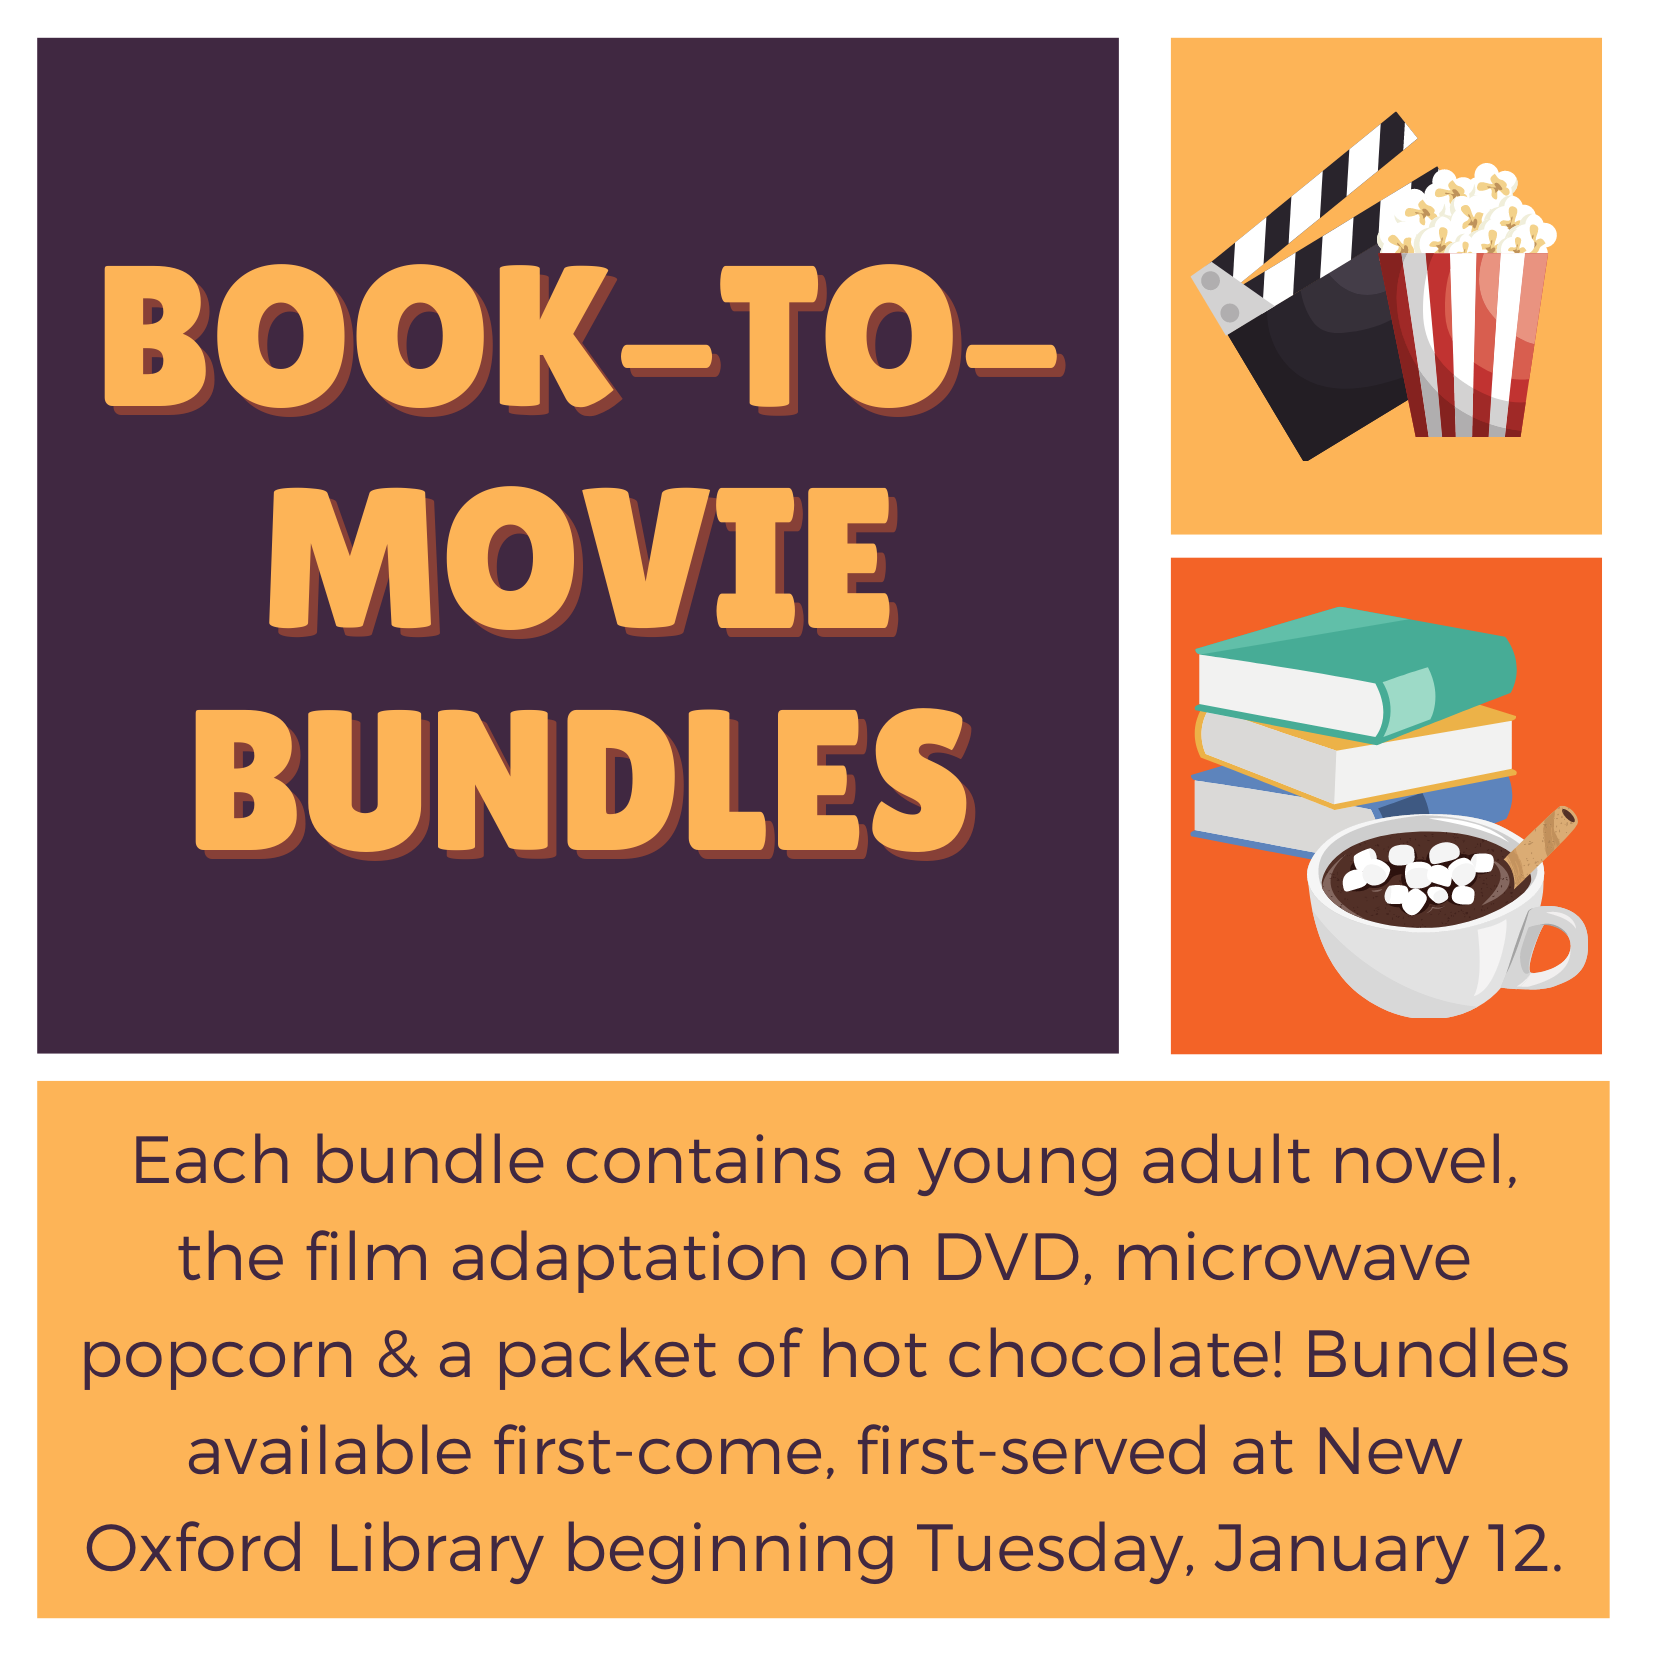 book-to-movie bundles